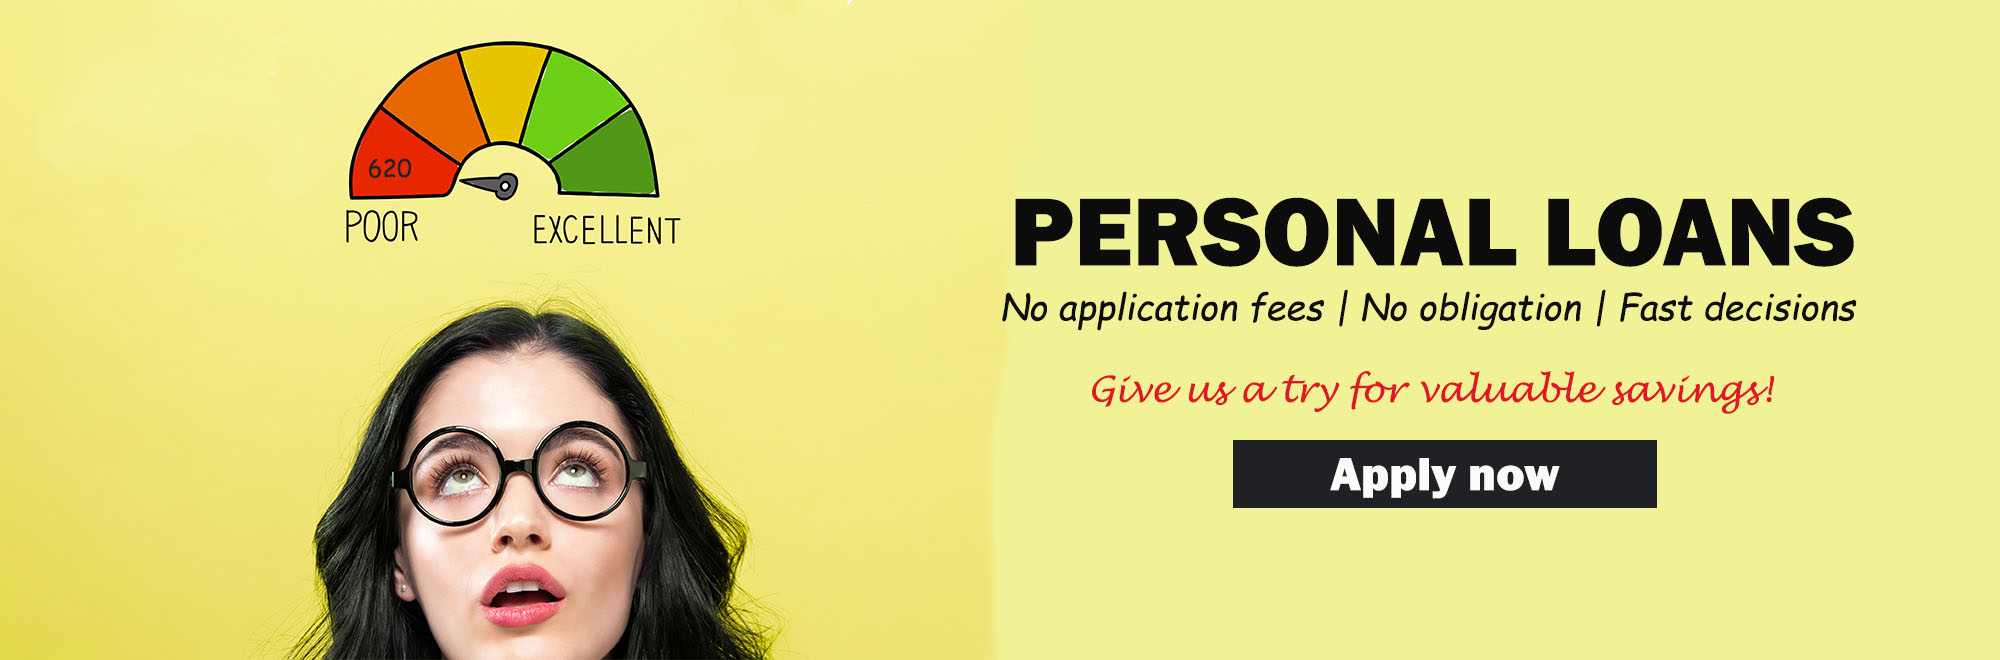 Personal loans with no application fees, no obligation, and fast decisions. Give us a try for valuable savings!